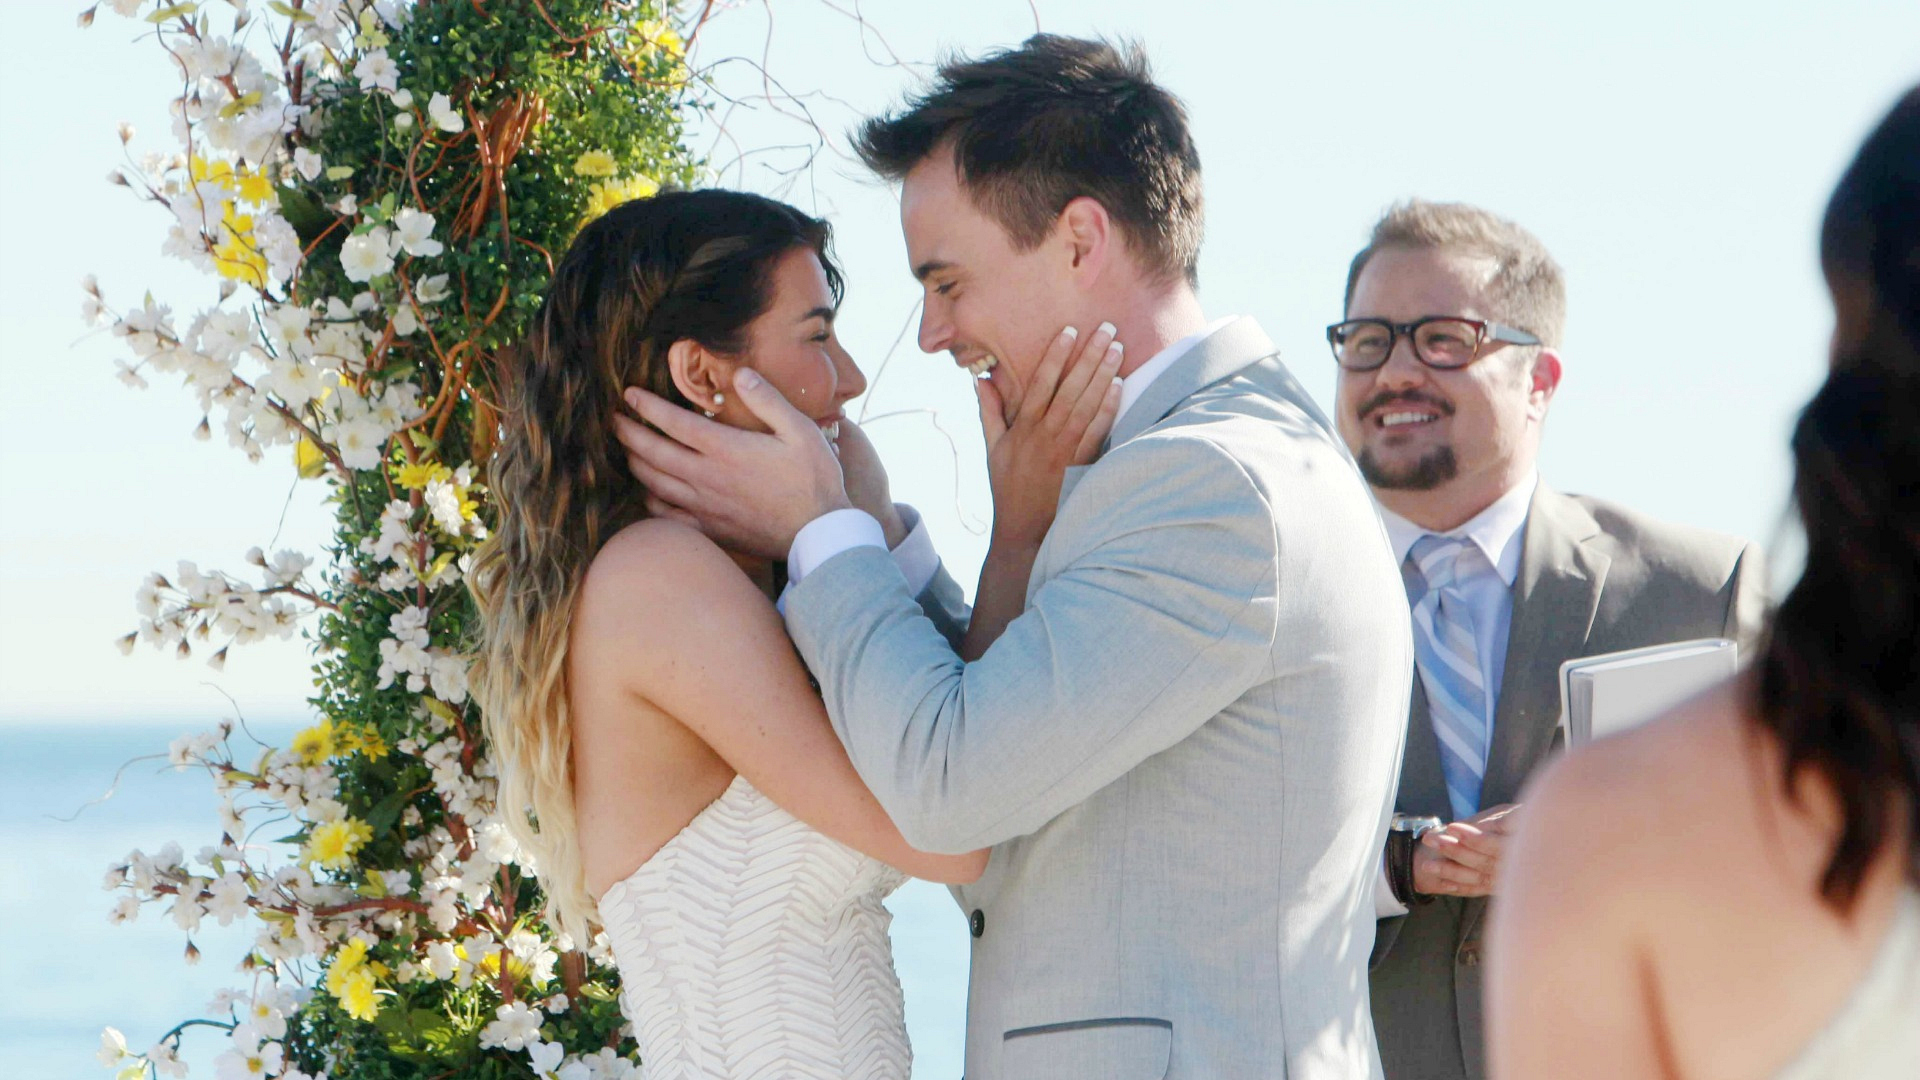 Steffy and Wyatt exchanged vows on B&B.